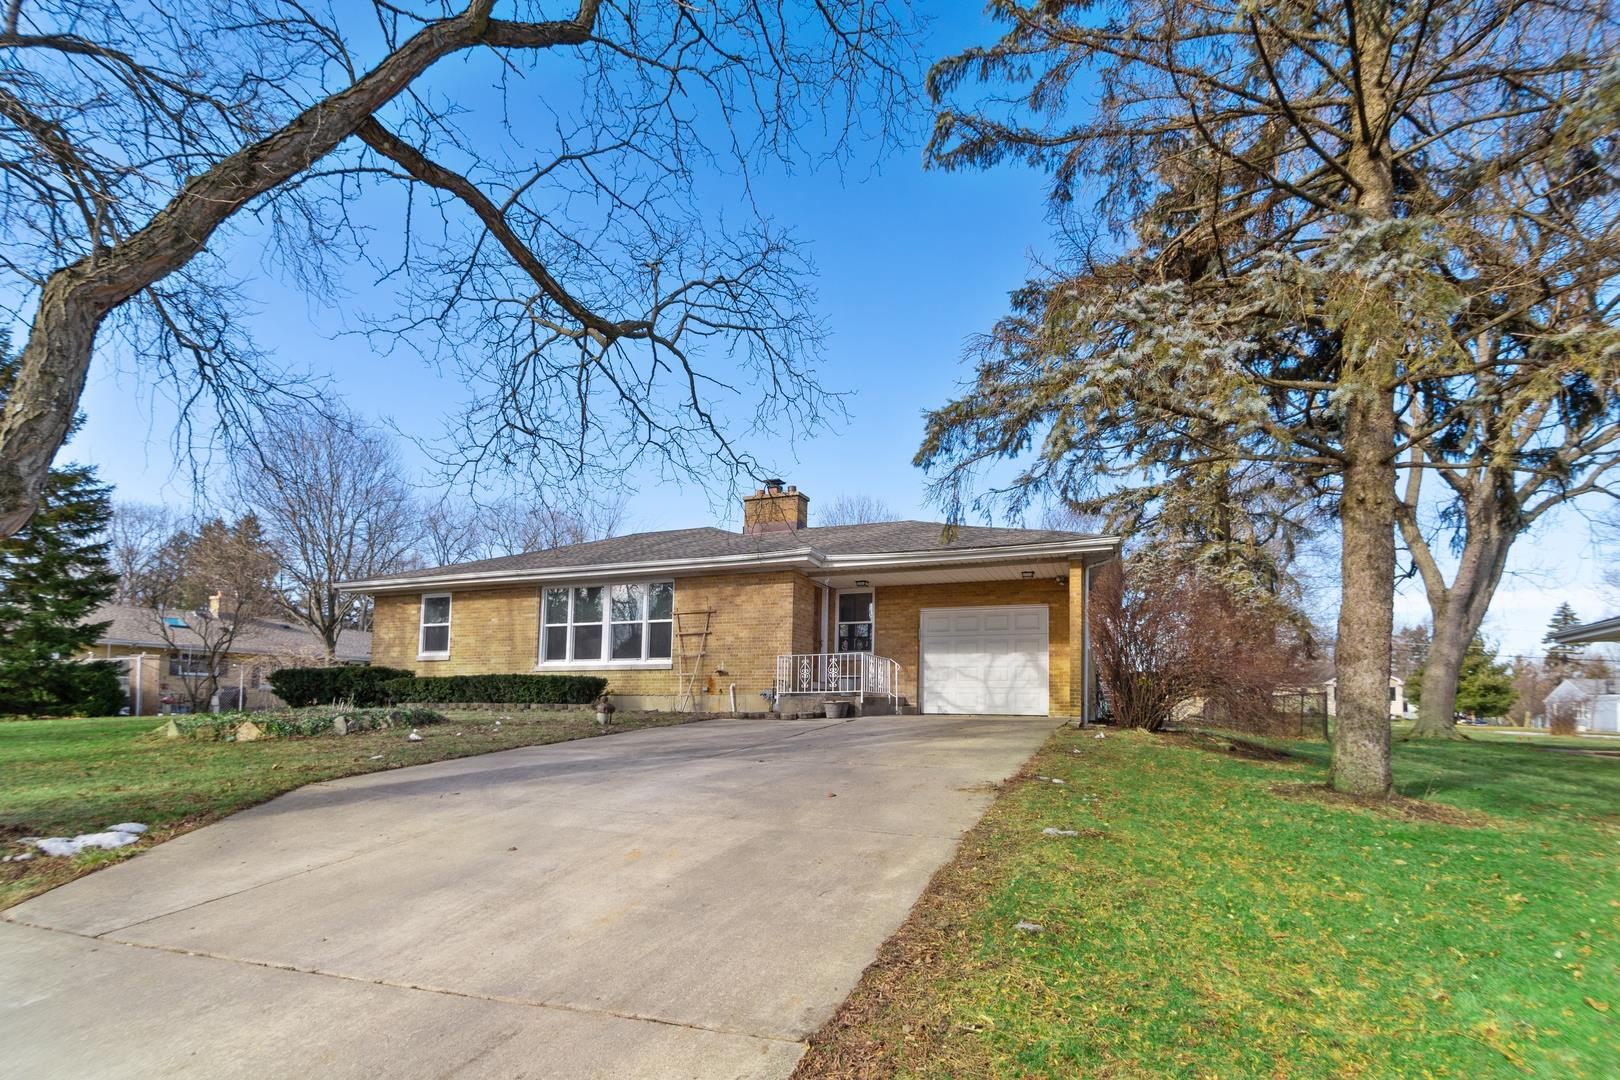 23W512 Woodworth Place, Roselle, IL 60172 - #: 10668964